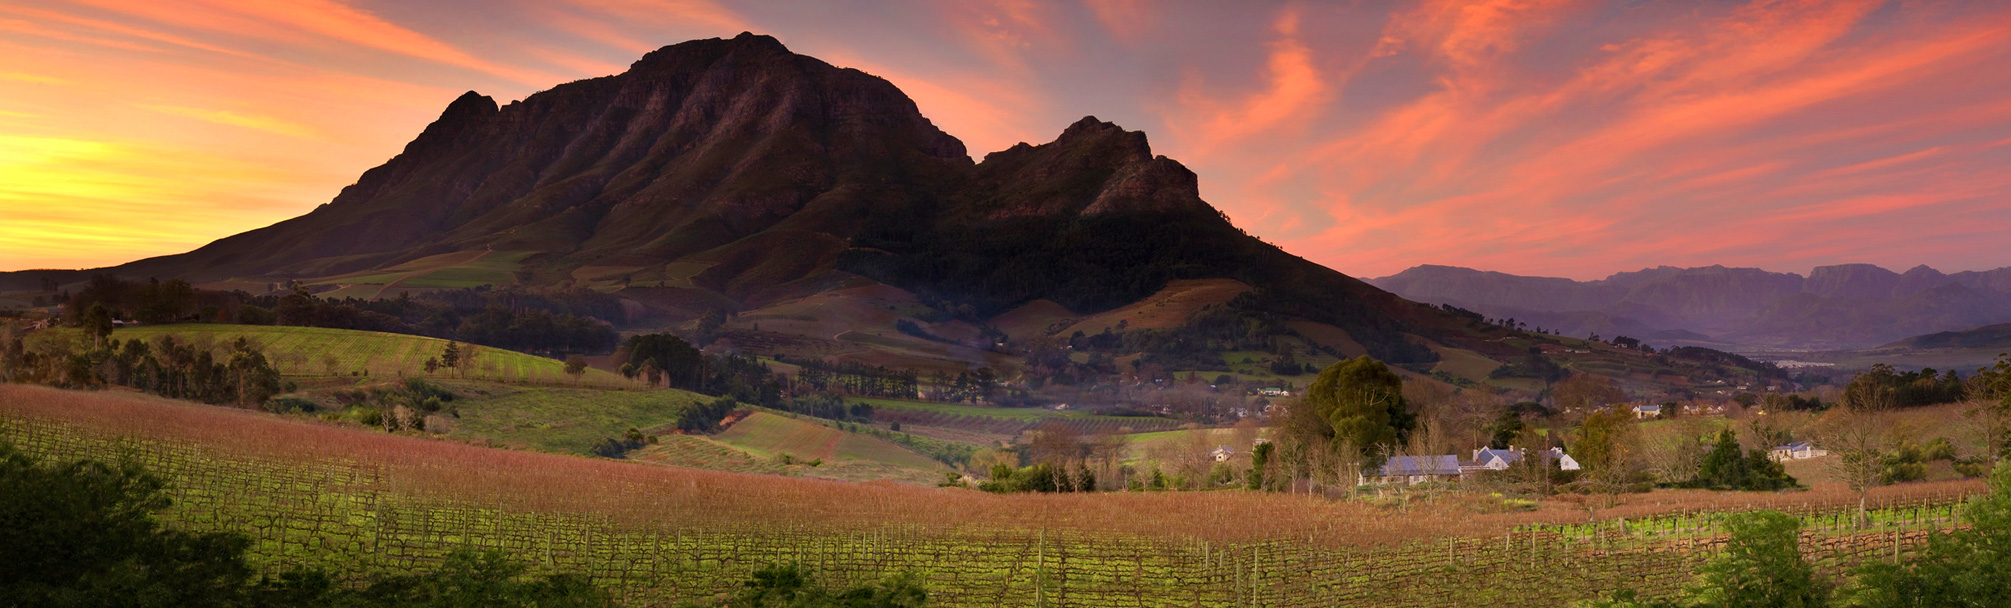 The Cape Winelands Award-winning Wine Estates & Gastronomy Capital of South Africa